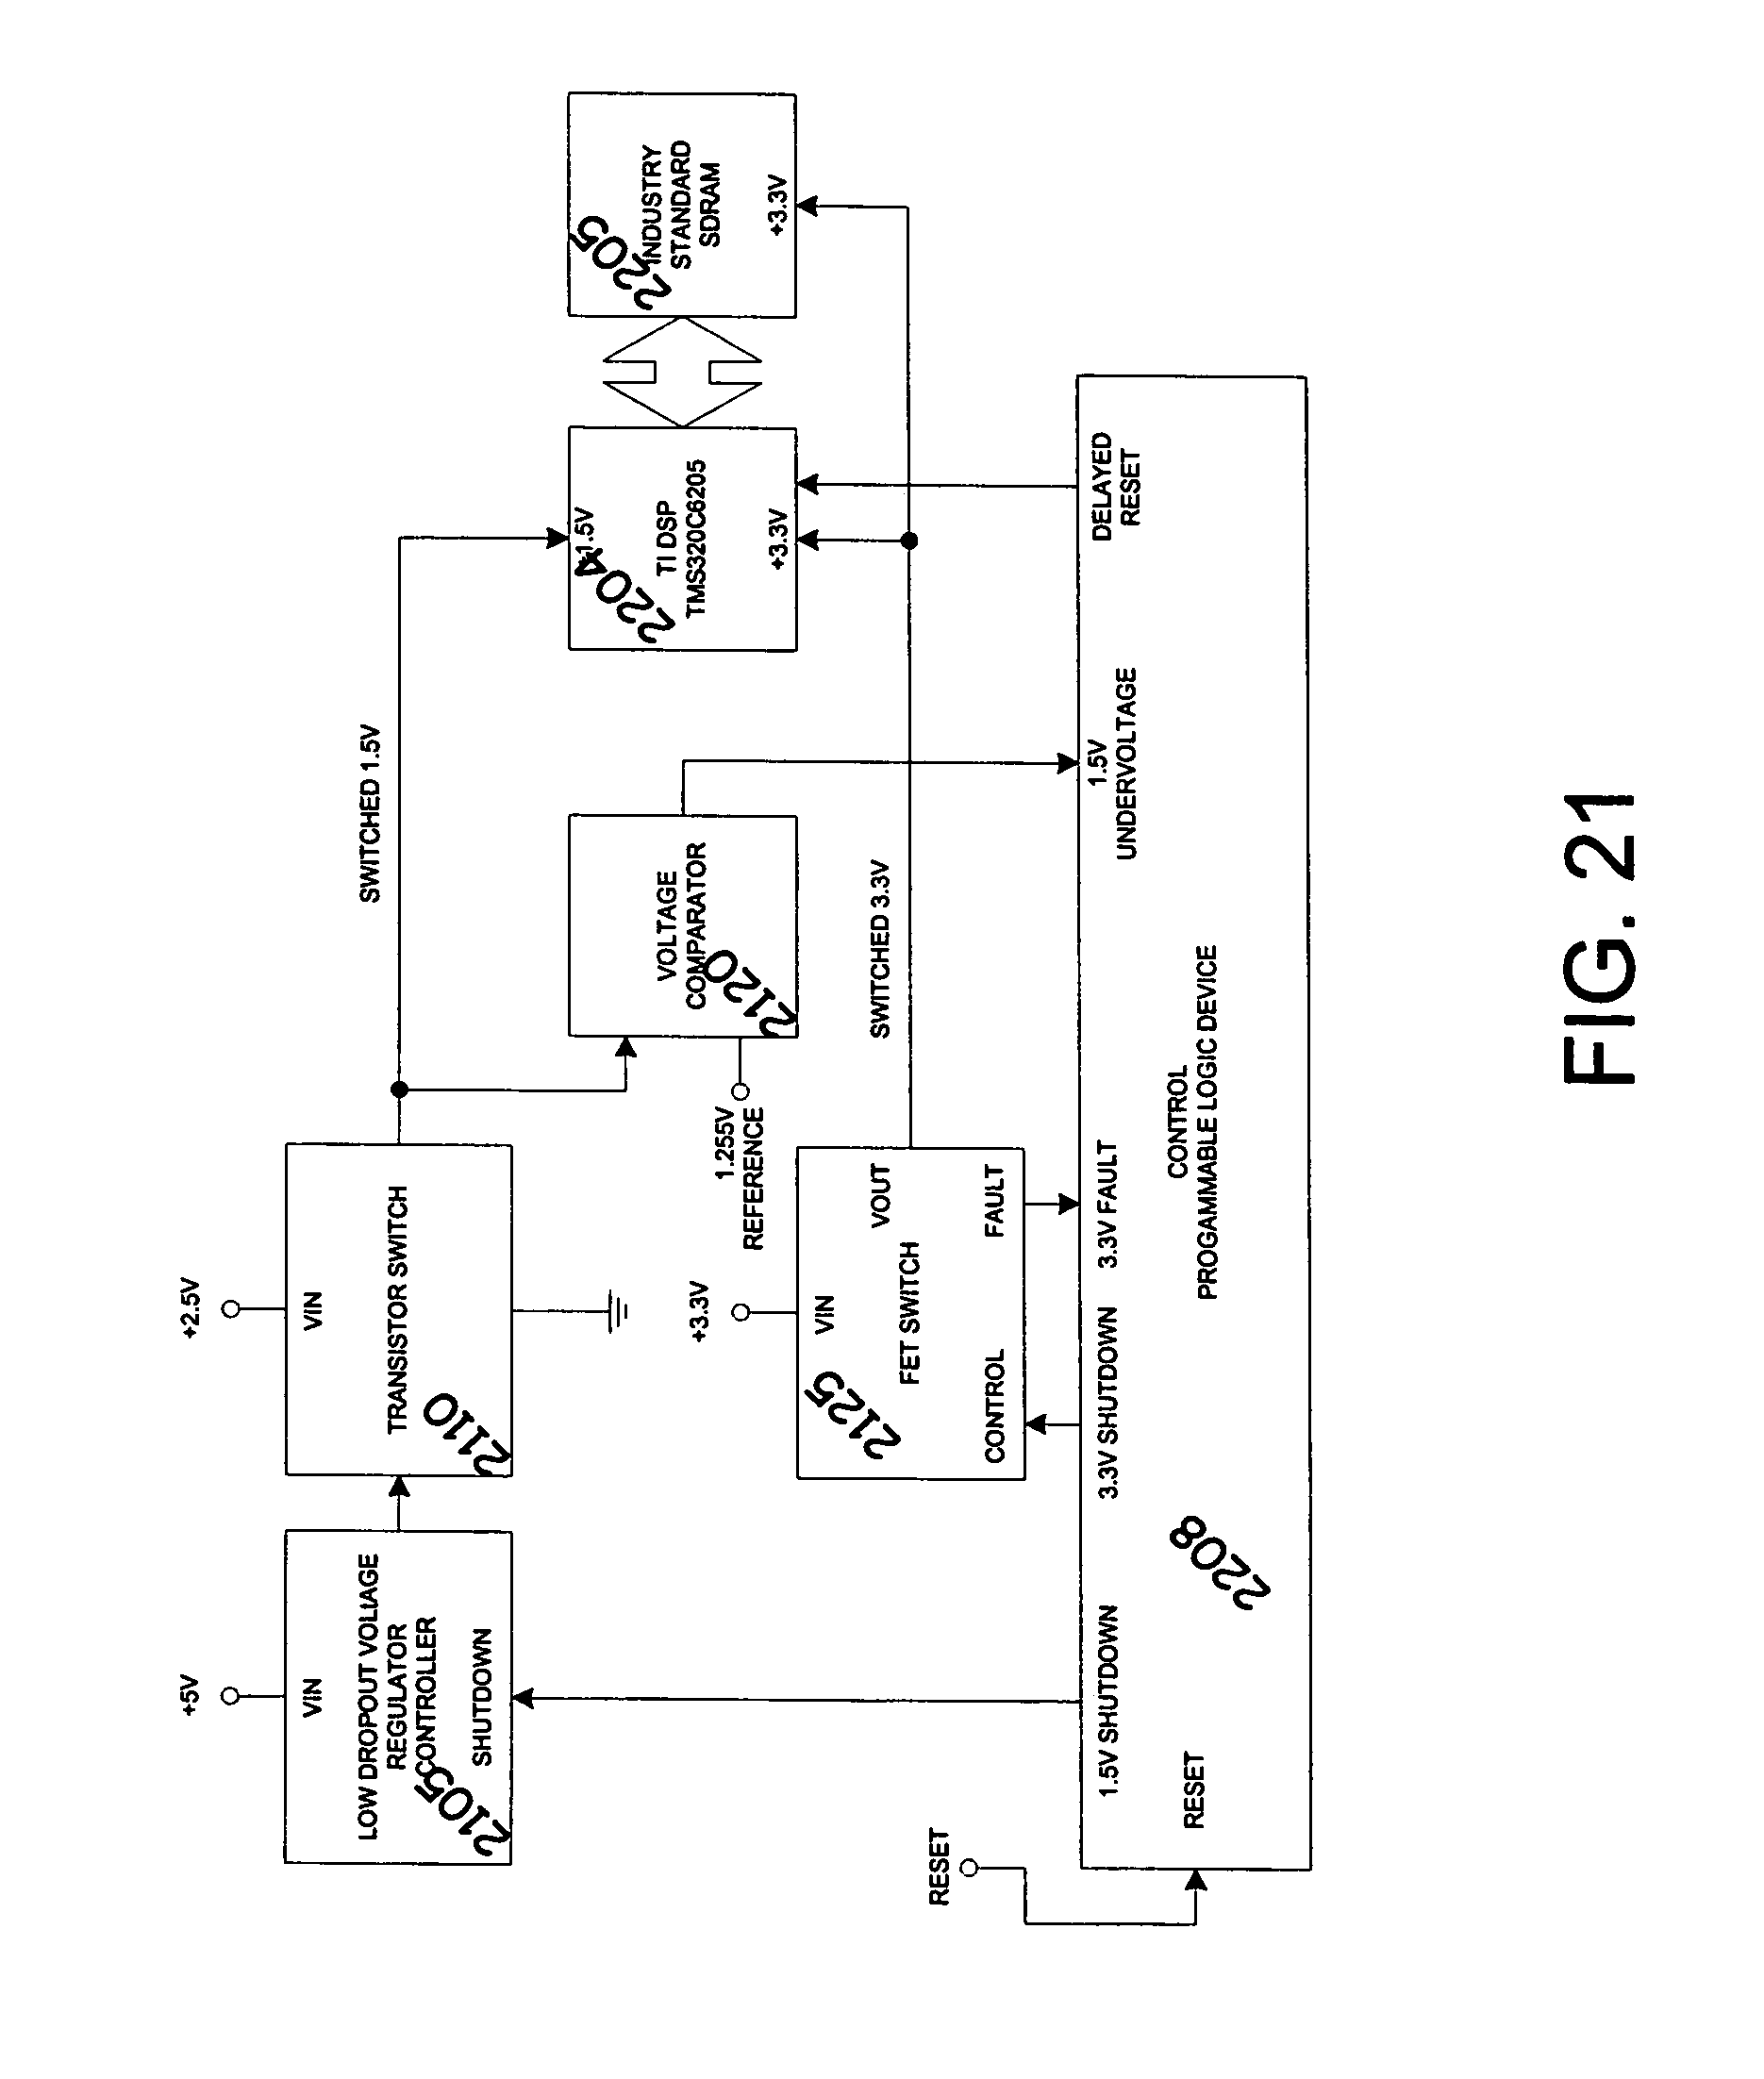 Patent Us 7296165 B2 Circuit Of A Capacitive Discharge Firing Box Resembles This 0 Petitions